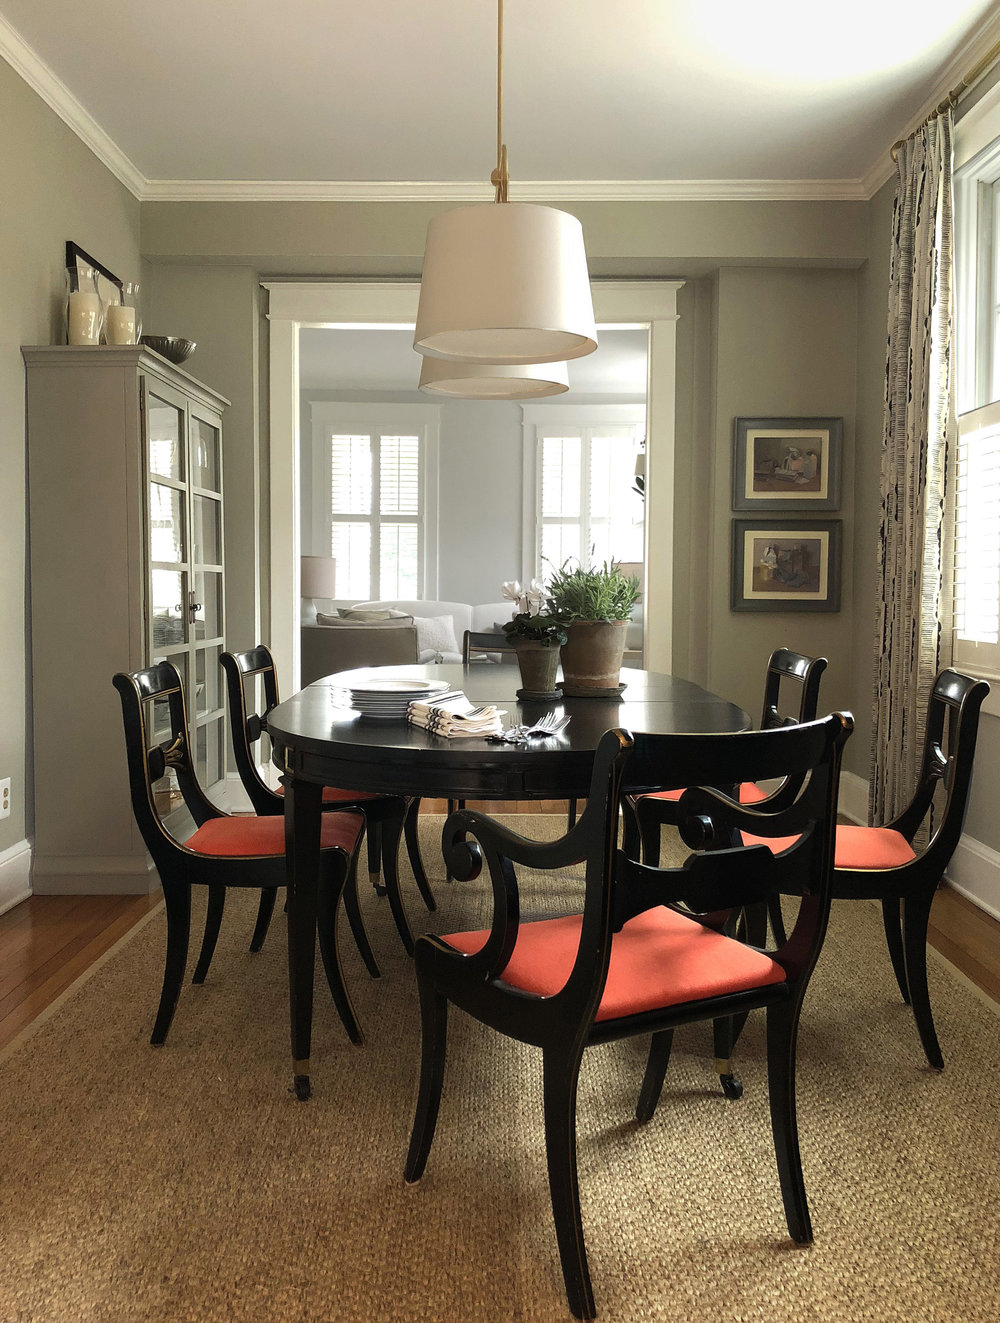 Jones-Rowan-Studio_Interior-Design_Washington-D.C._Dining Room.jpg